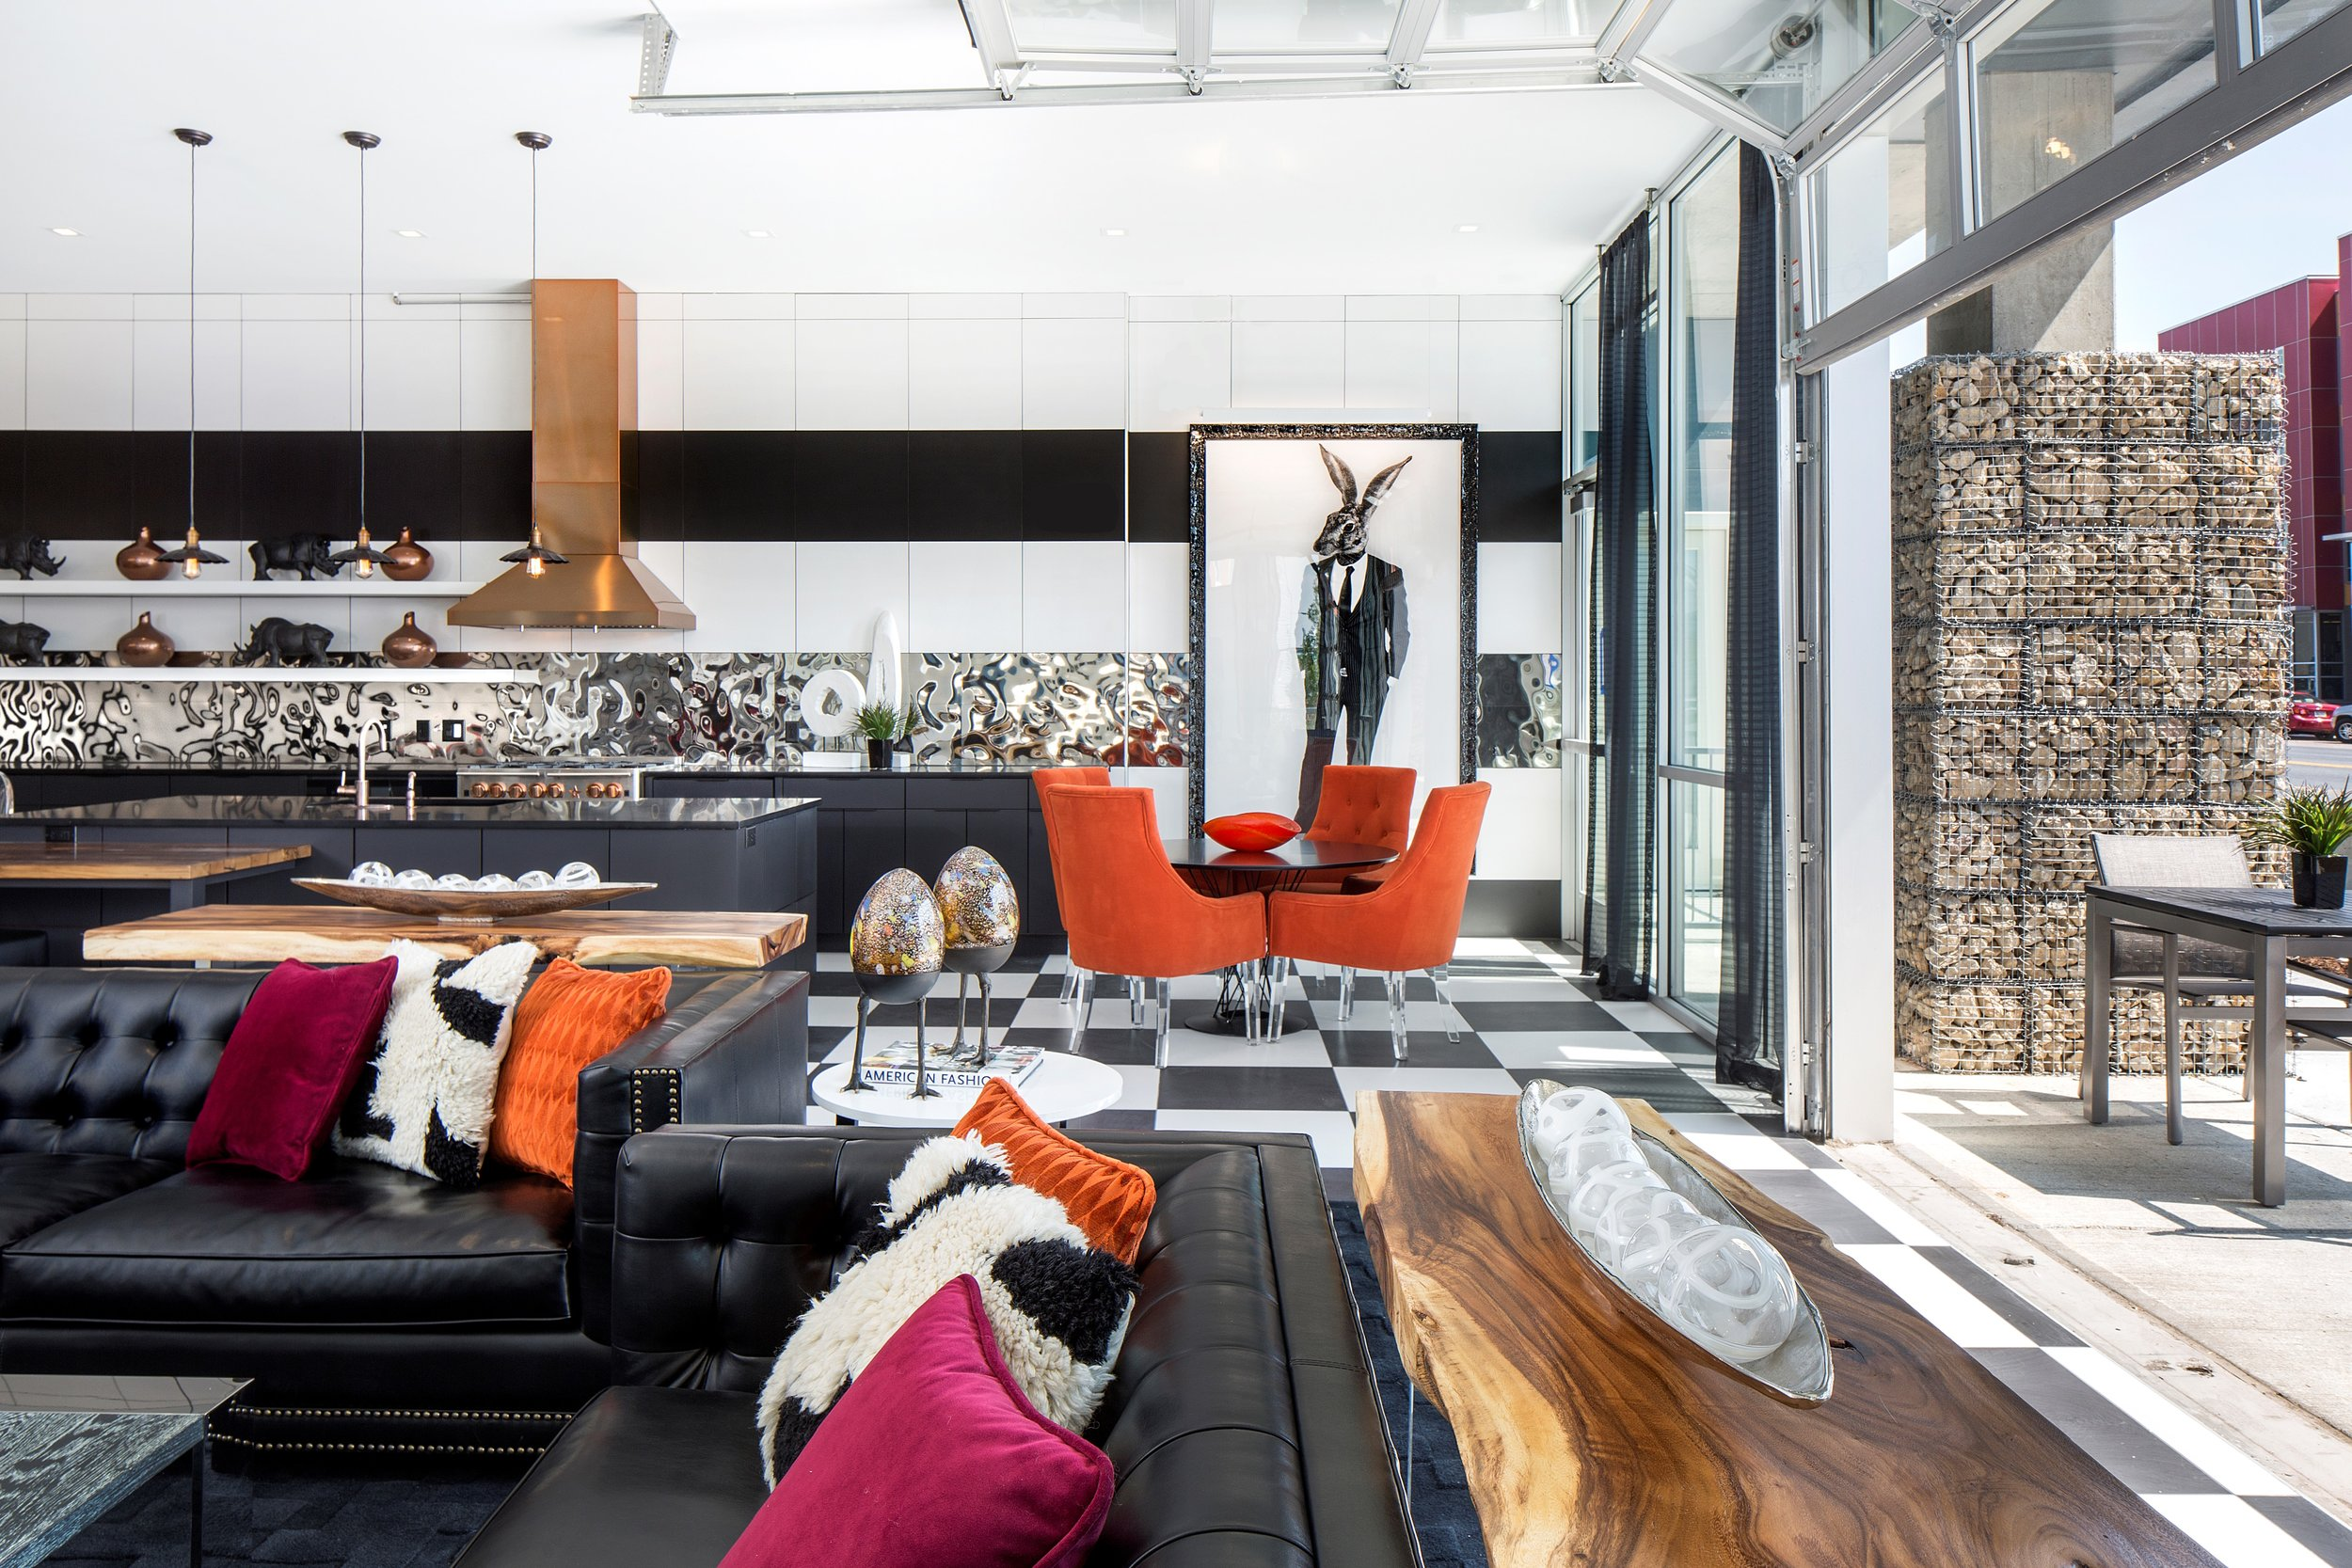 17-Lounge Complete with Indoor-Outdoor Seating Options.jpg